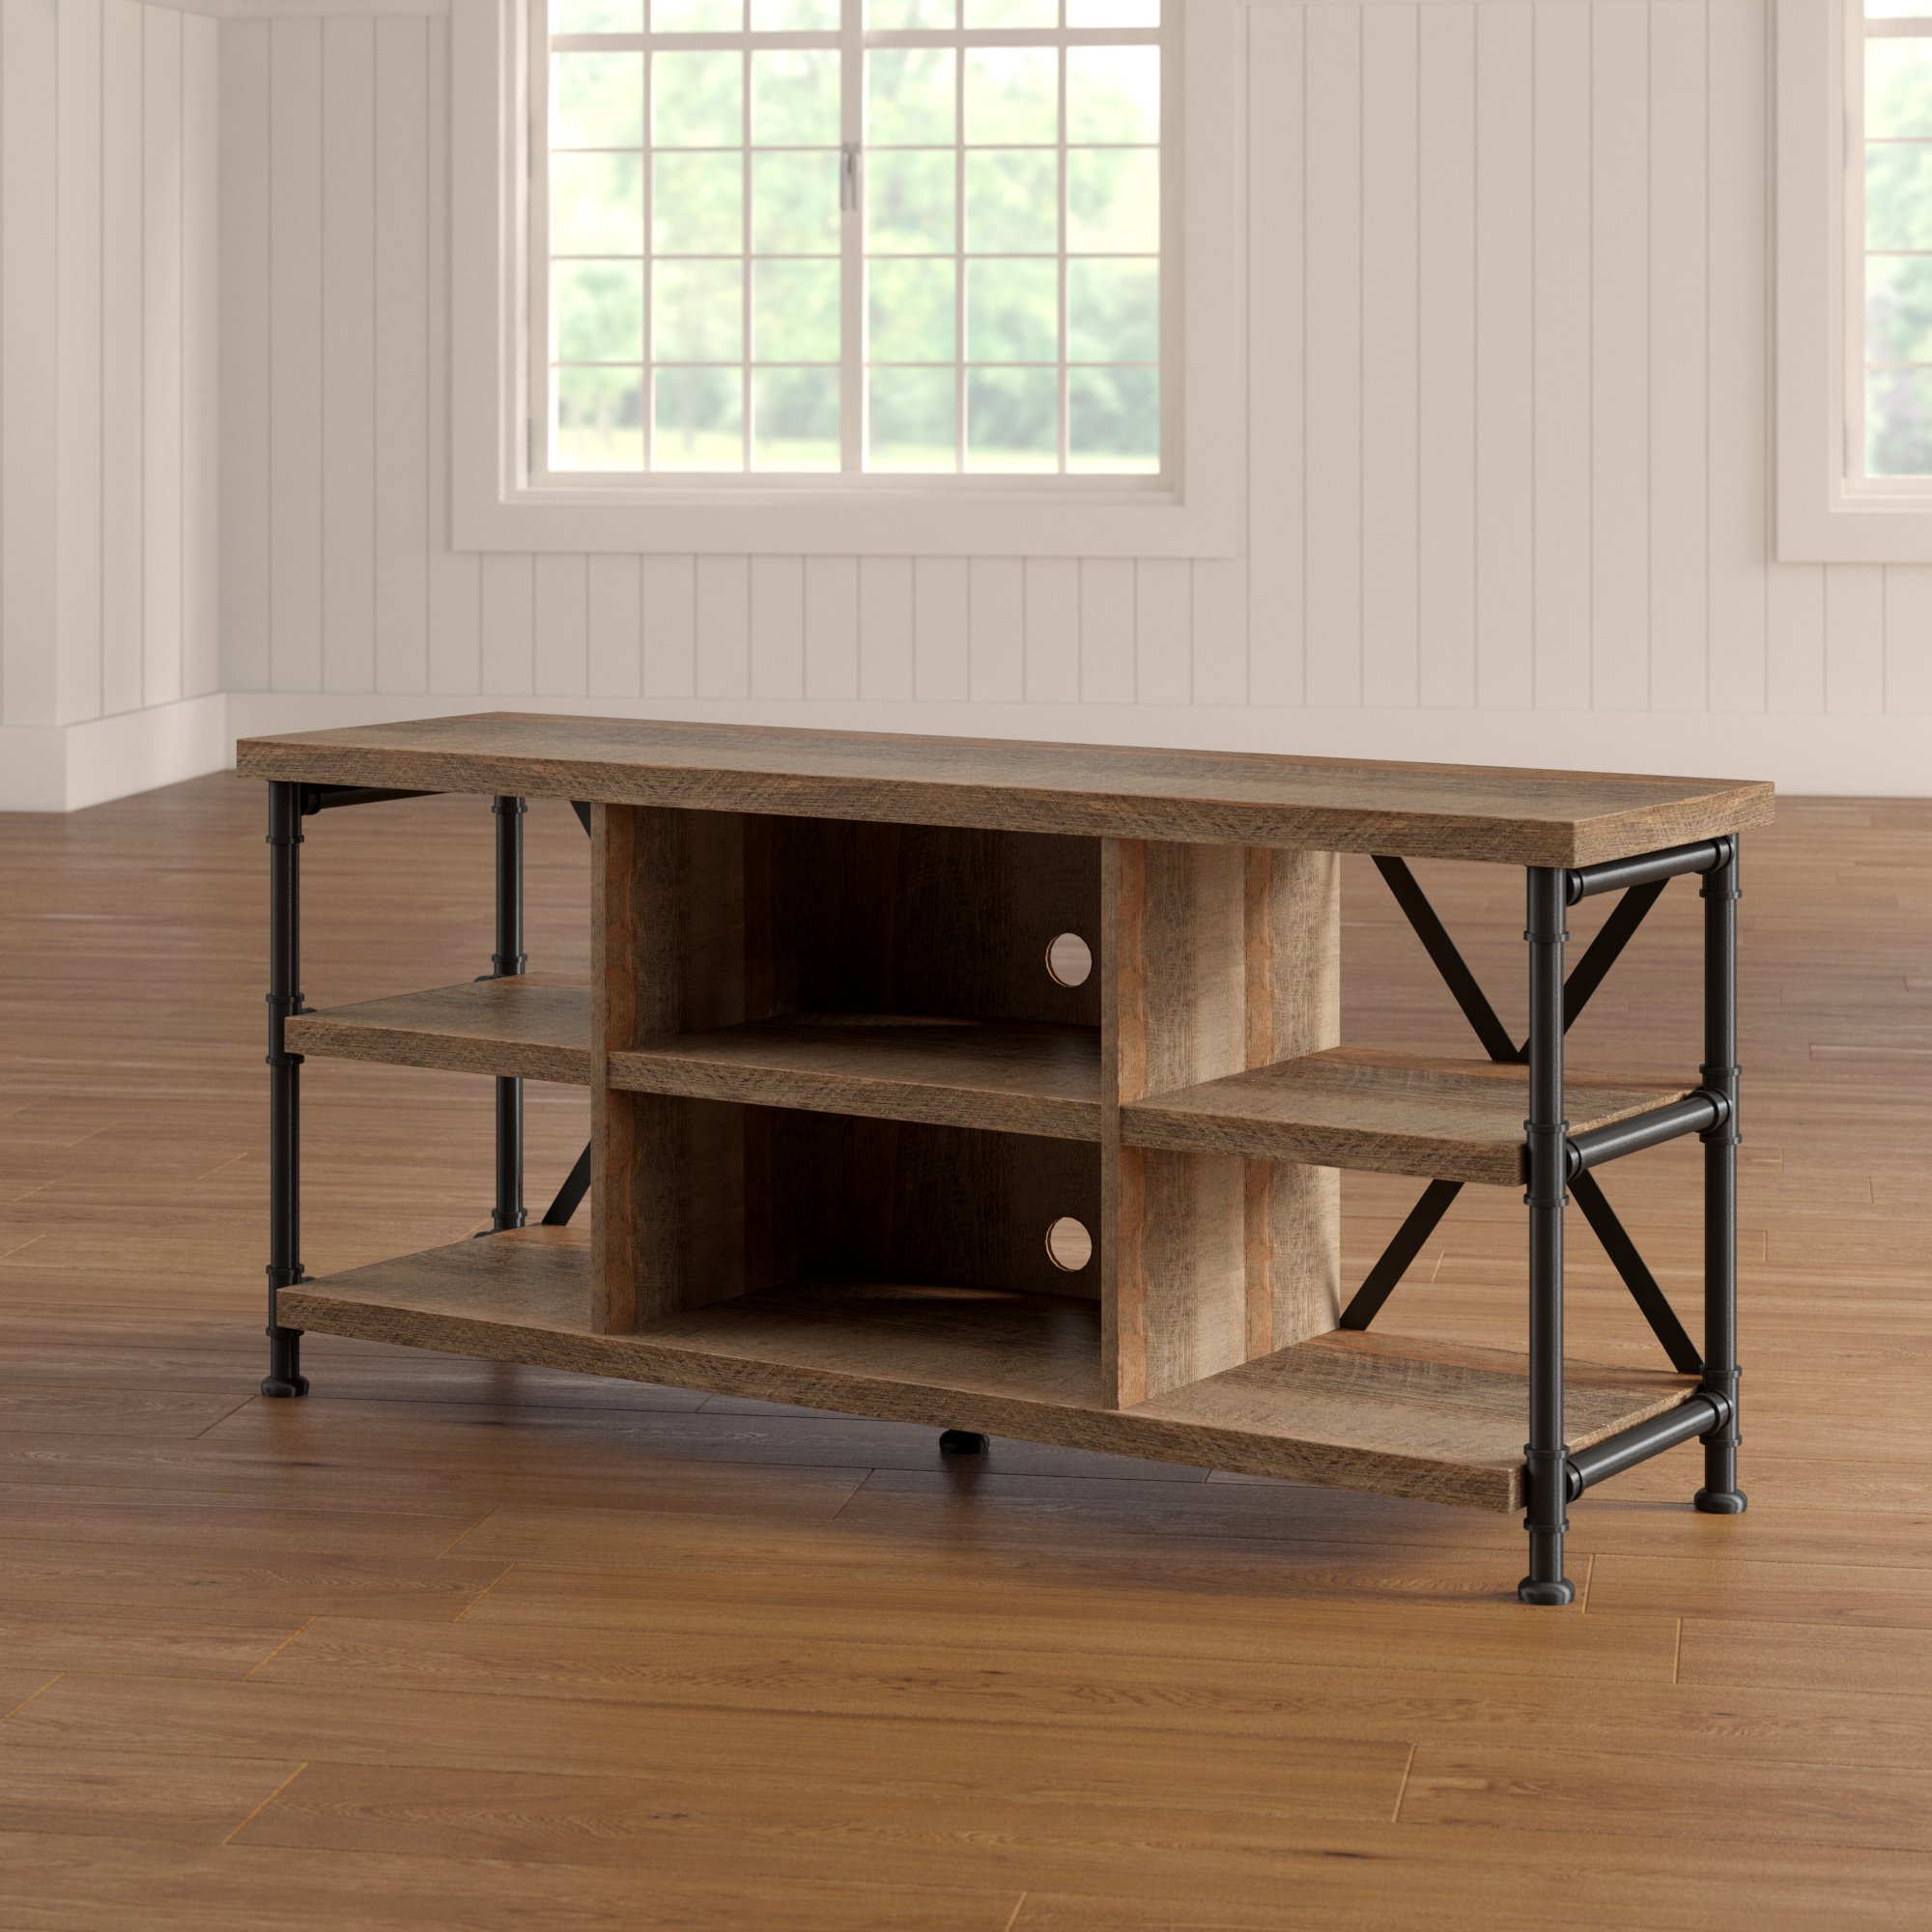 Tv Stands & Entertainment Centers You'll Love | Wayfair Regarding Sinclair Blue 64 Inch Tv Stands (View 27 of 30)